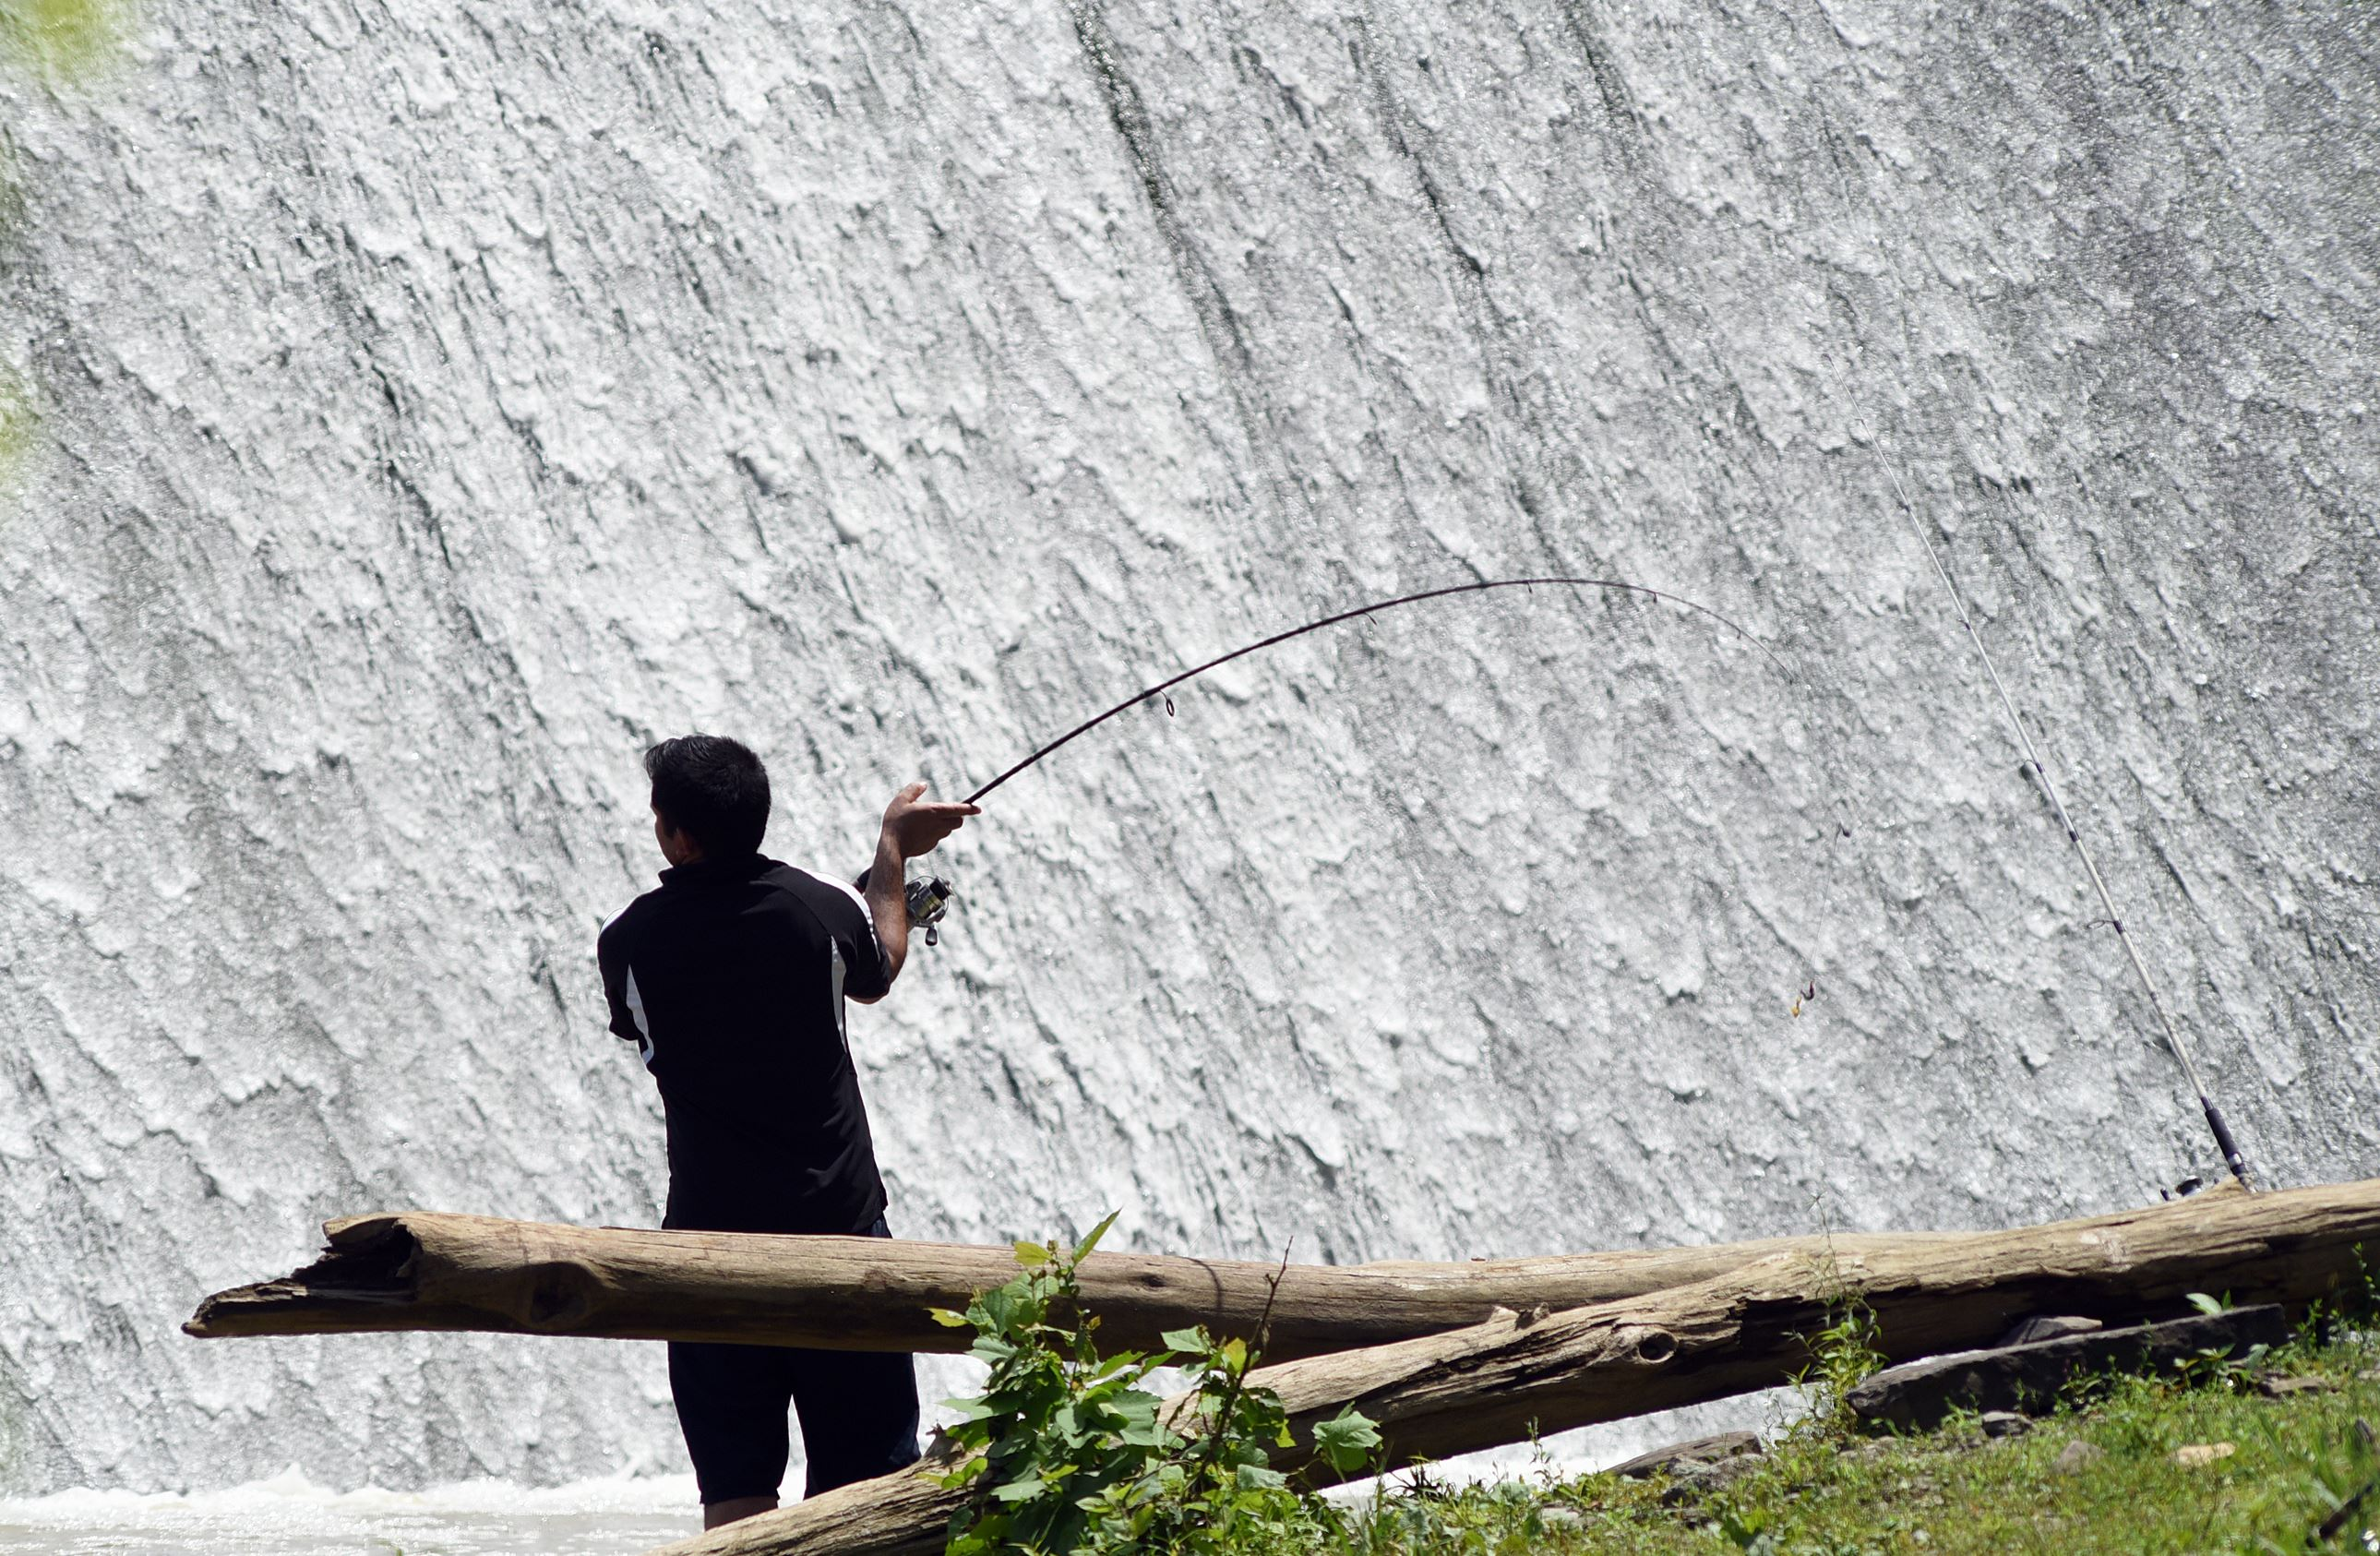 Hunting fishing license fee increases considered for California fishing license fee